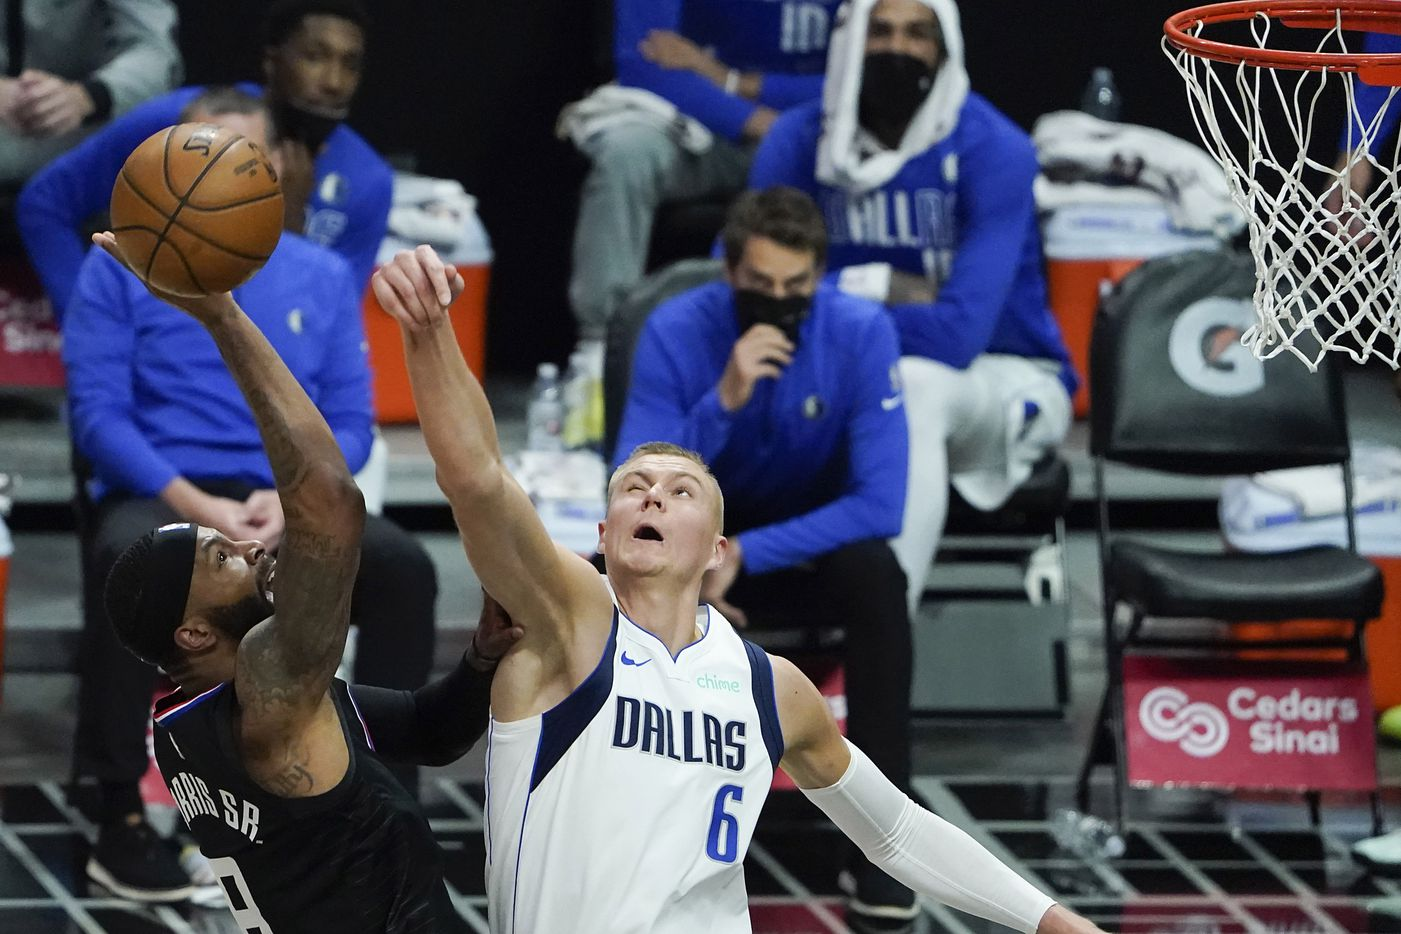 Dallas Mavericks center Kristaps Porzingis (6) blocks a shot by LA Clippers forward Marcus Morris Sr. (8) during the second half of an NBA playoff basketball game at Staples Center on Tuesday, May 25, 2021, in Los Angeles.